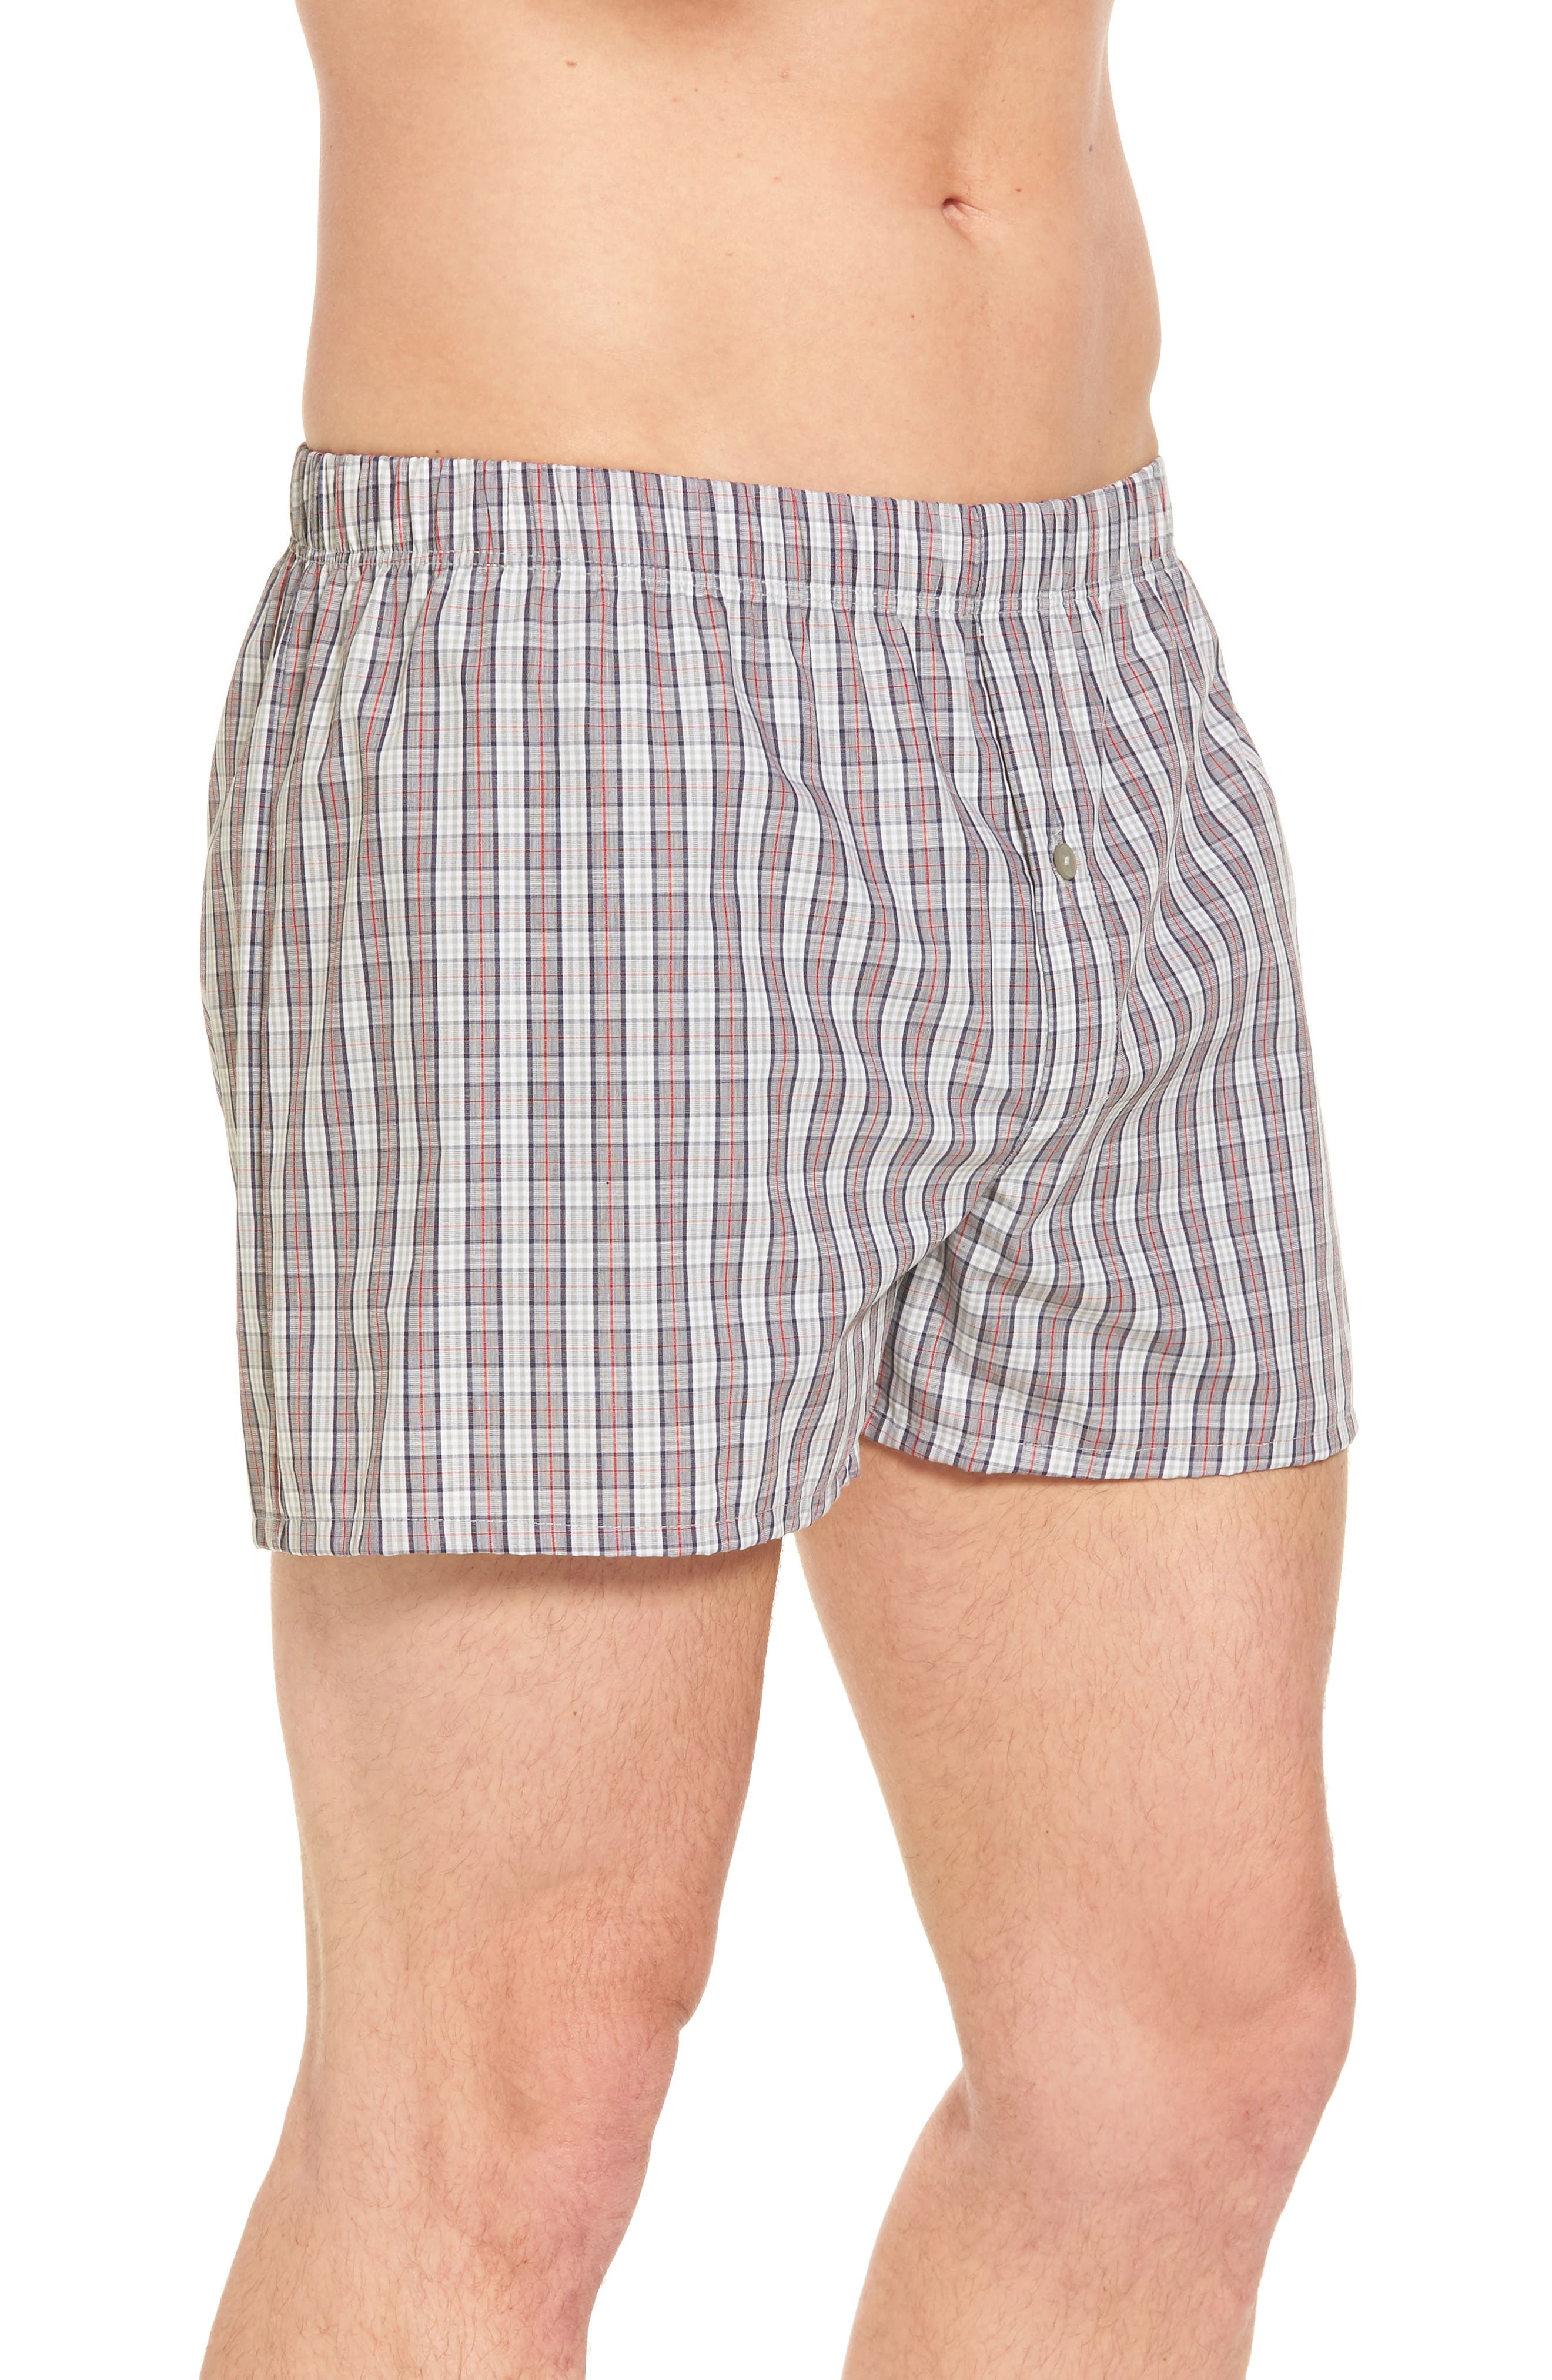 Fancy Cotton Boxers,                             Alternate thumbnail 3, color,                             Red Karo